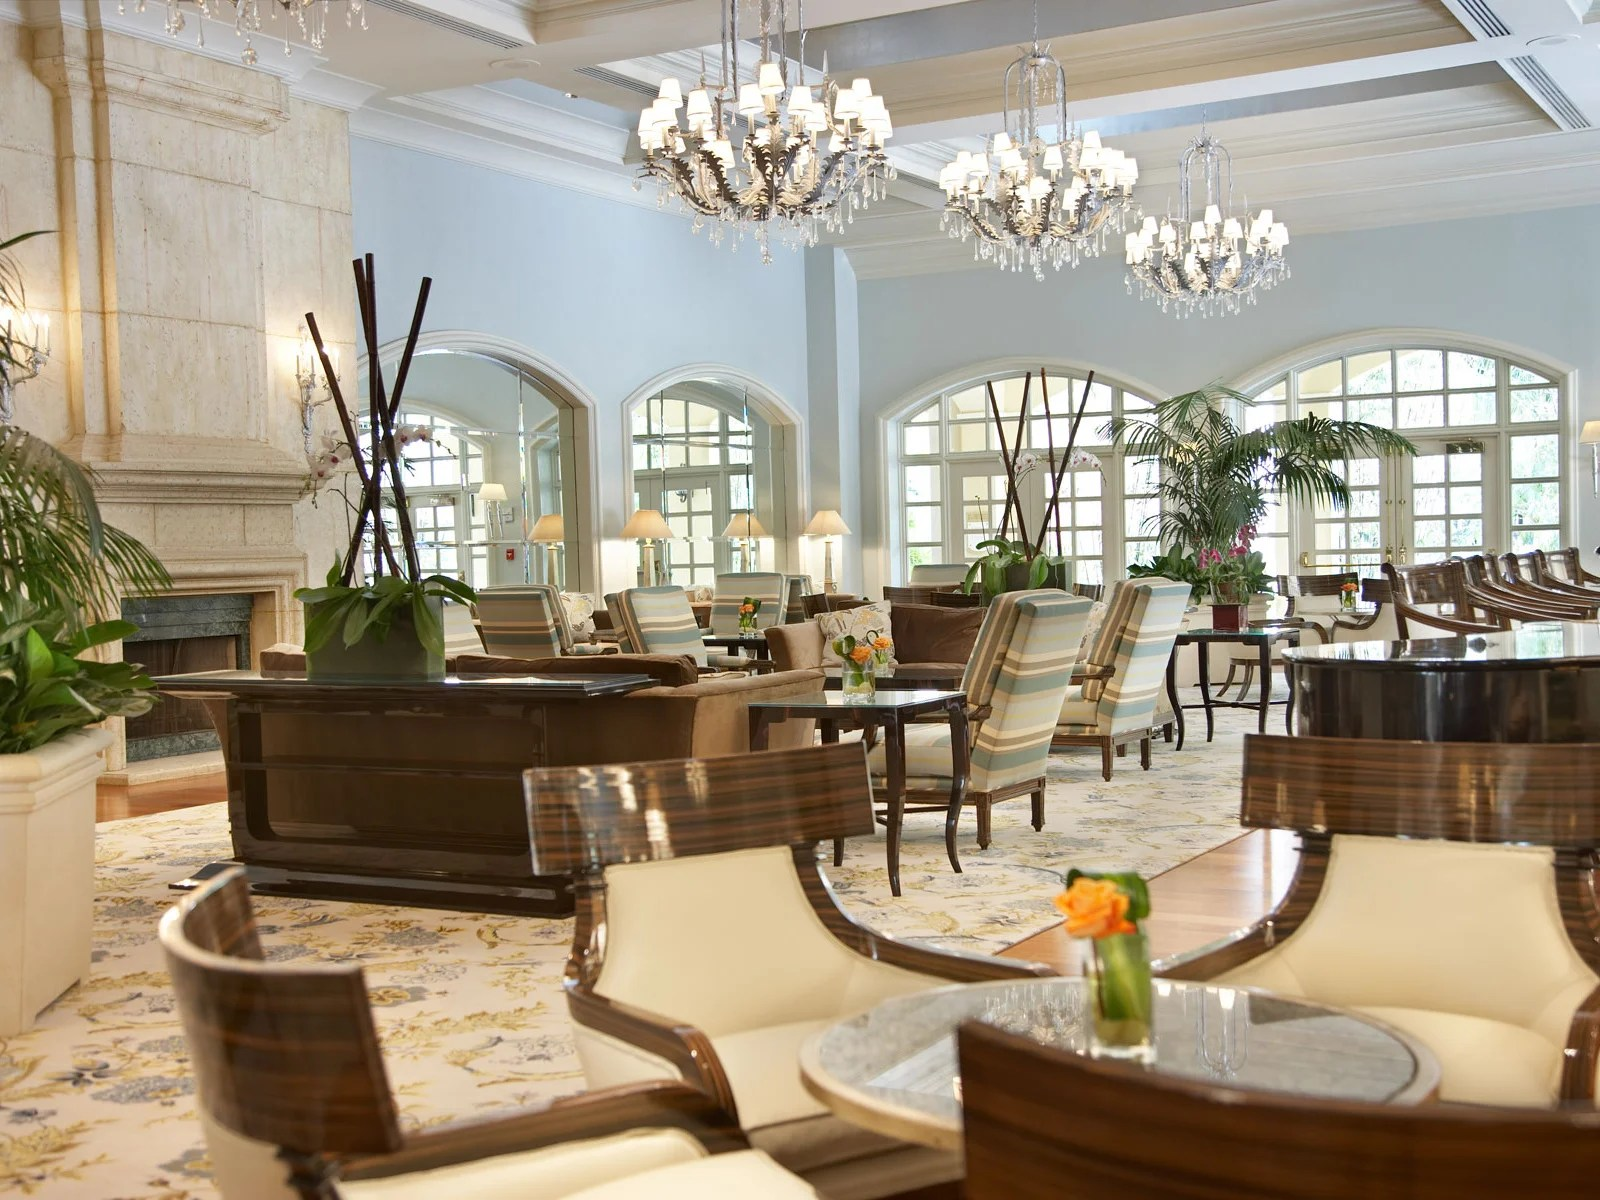 hotels in miami with kitchen table bench seating the 8 best bars elite traveler